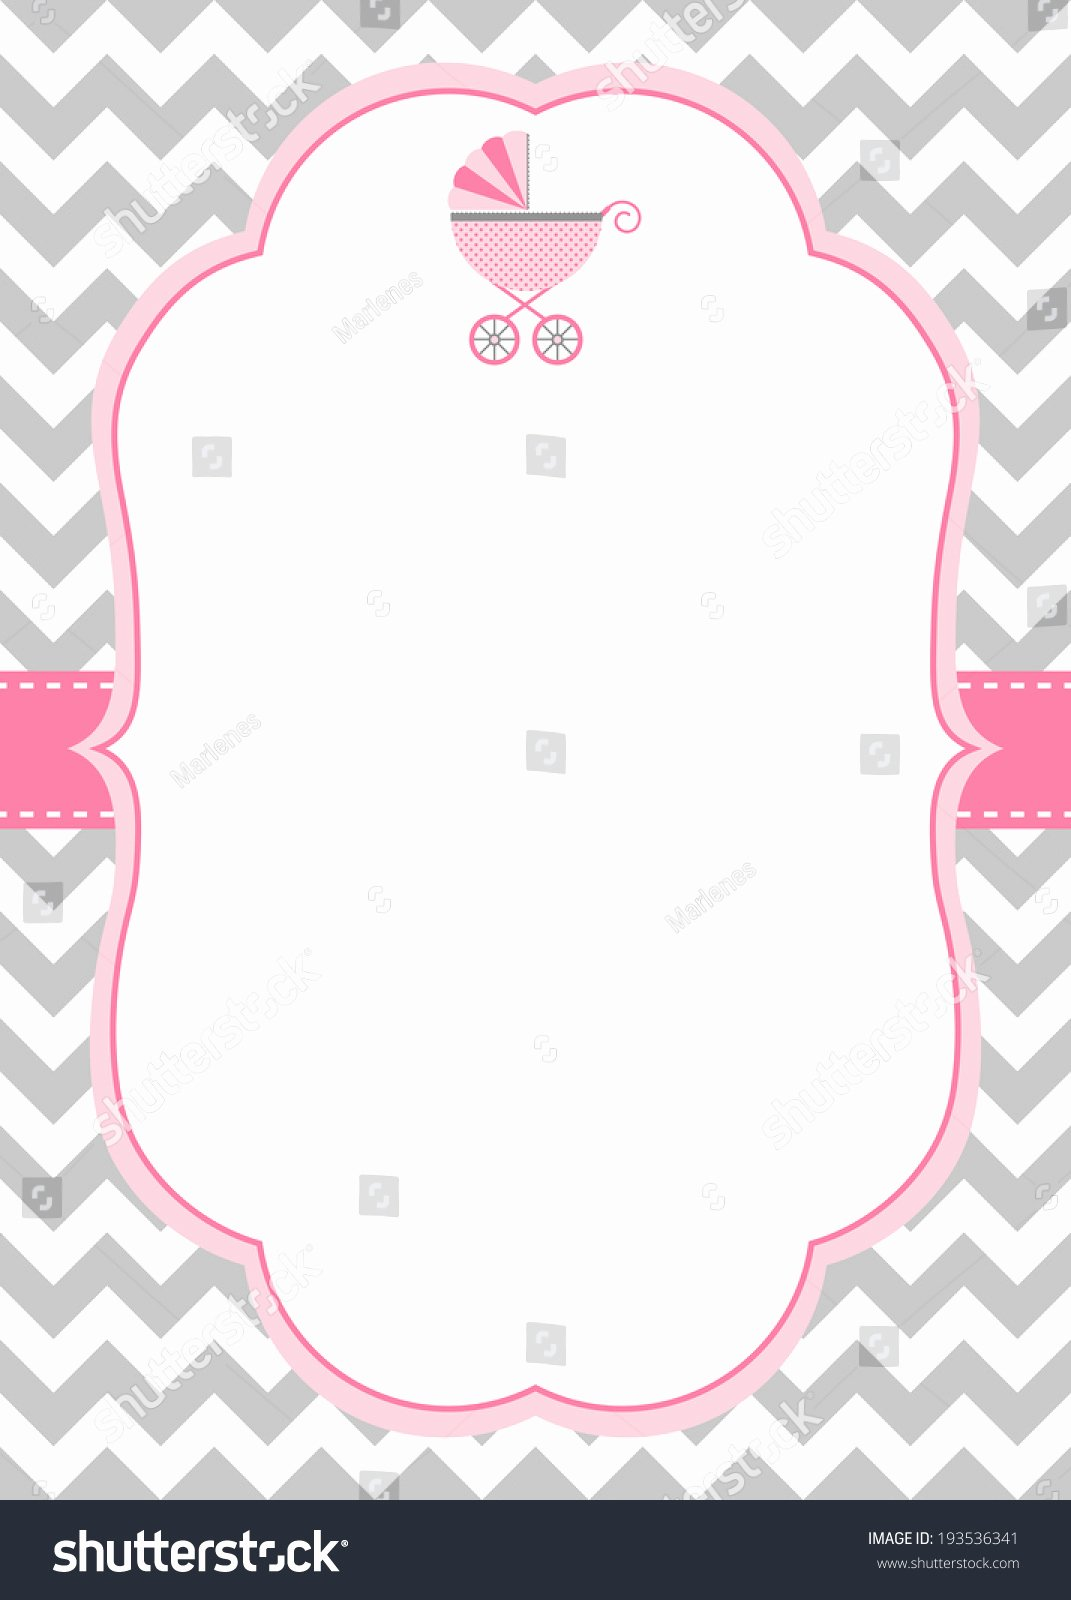 Baby Girl Announcement Template Unique Baby Girl Shower Invitation Template with Baby Stroller